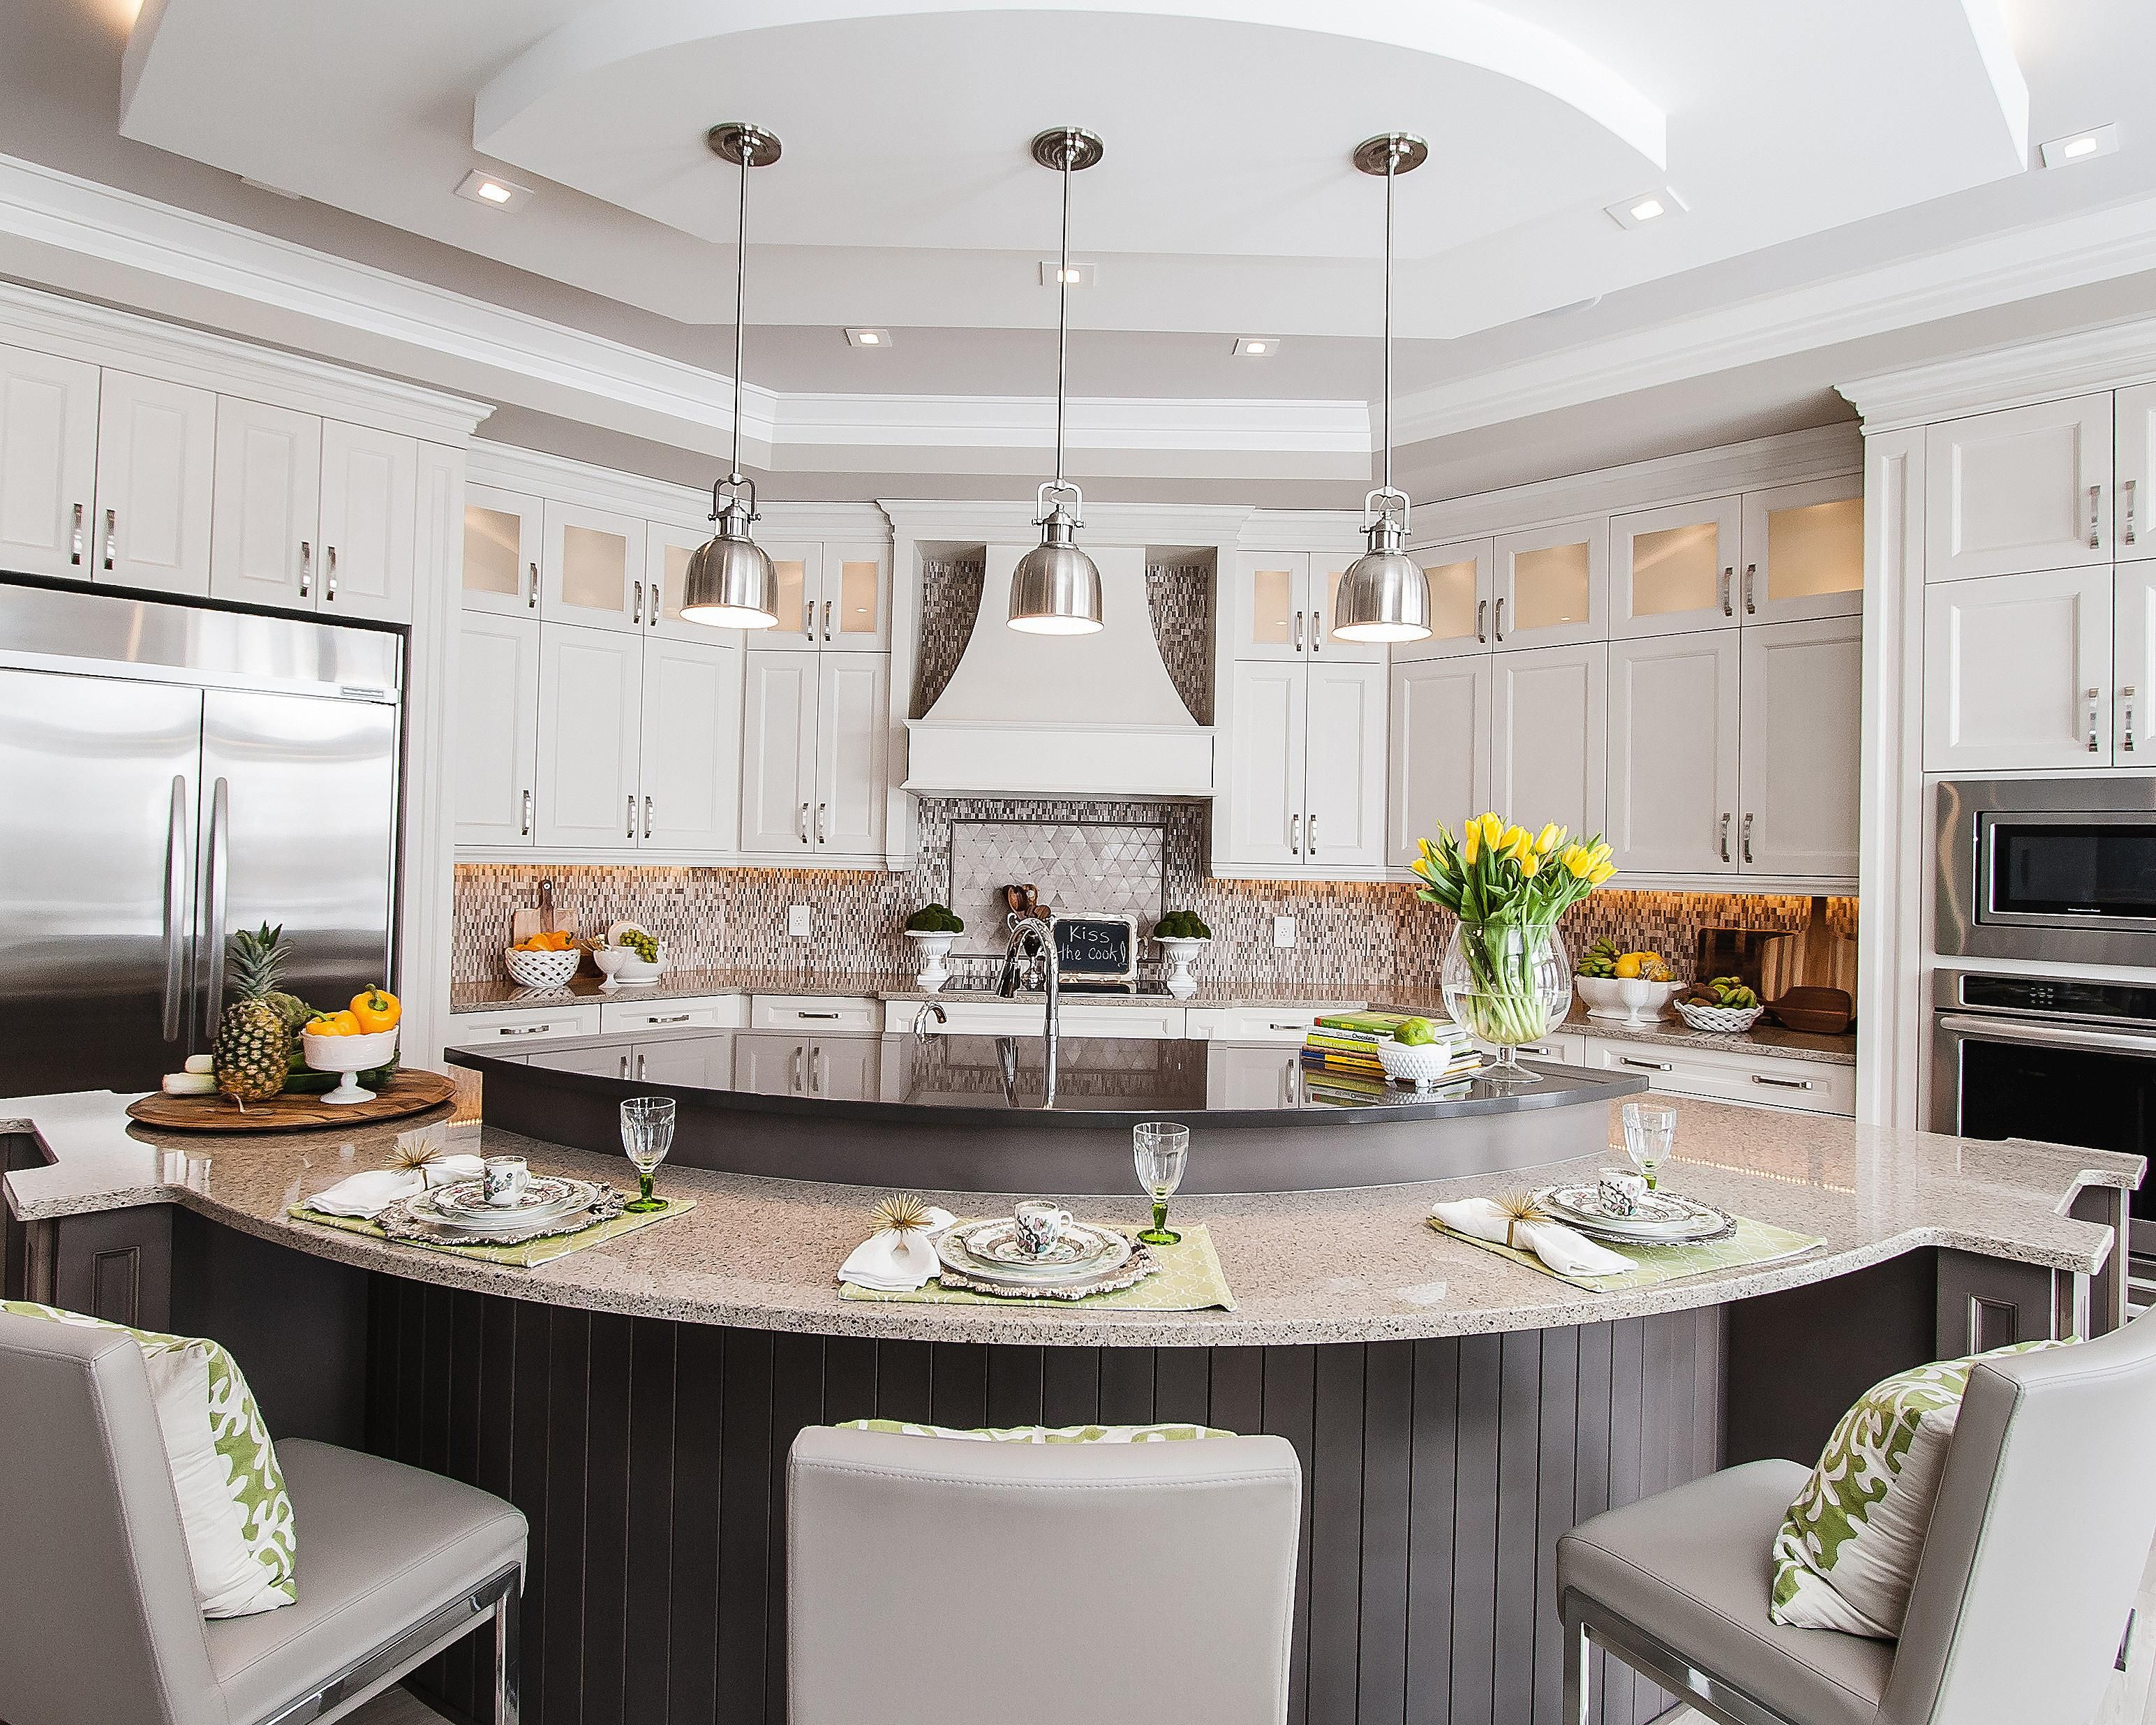 Inspirational Houzz Kitchen Pendant Lighting Luxury Kitchen Design Custom Kitchen Island Curved Kitchen